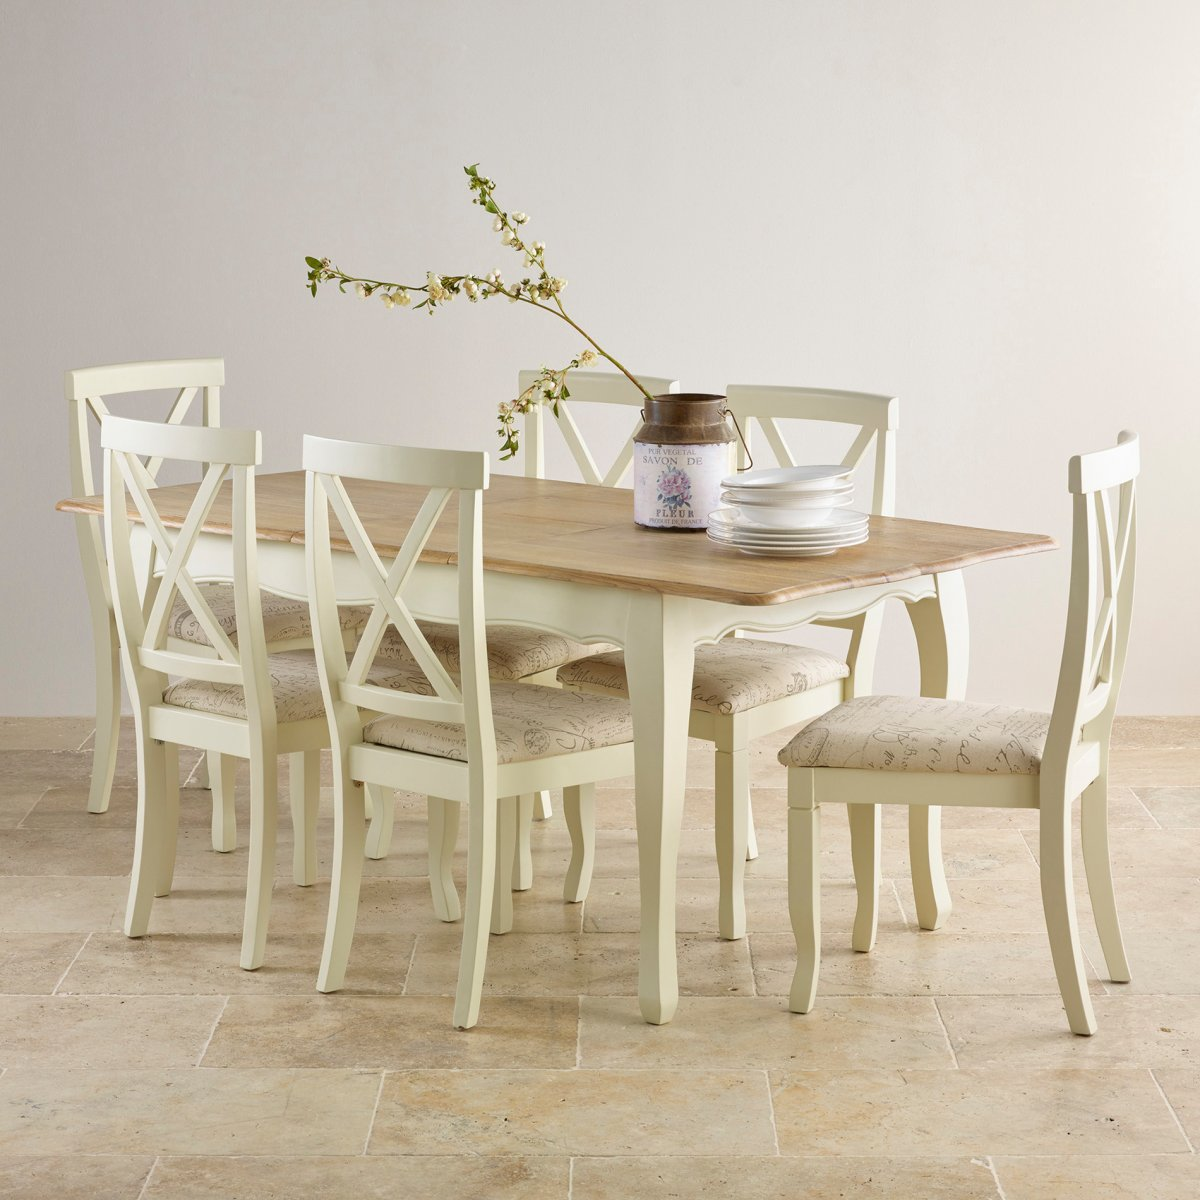 Edinburgh Extending Dining Set In Oak Dining Table 6 Chairs: Bella Painted Oak Extending Dining Table + 6 Script Beige